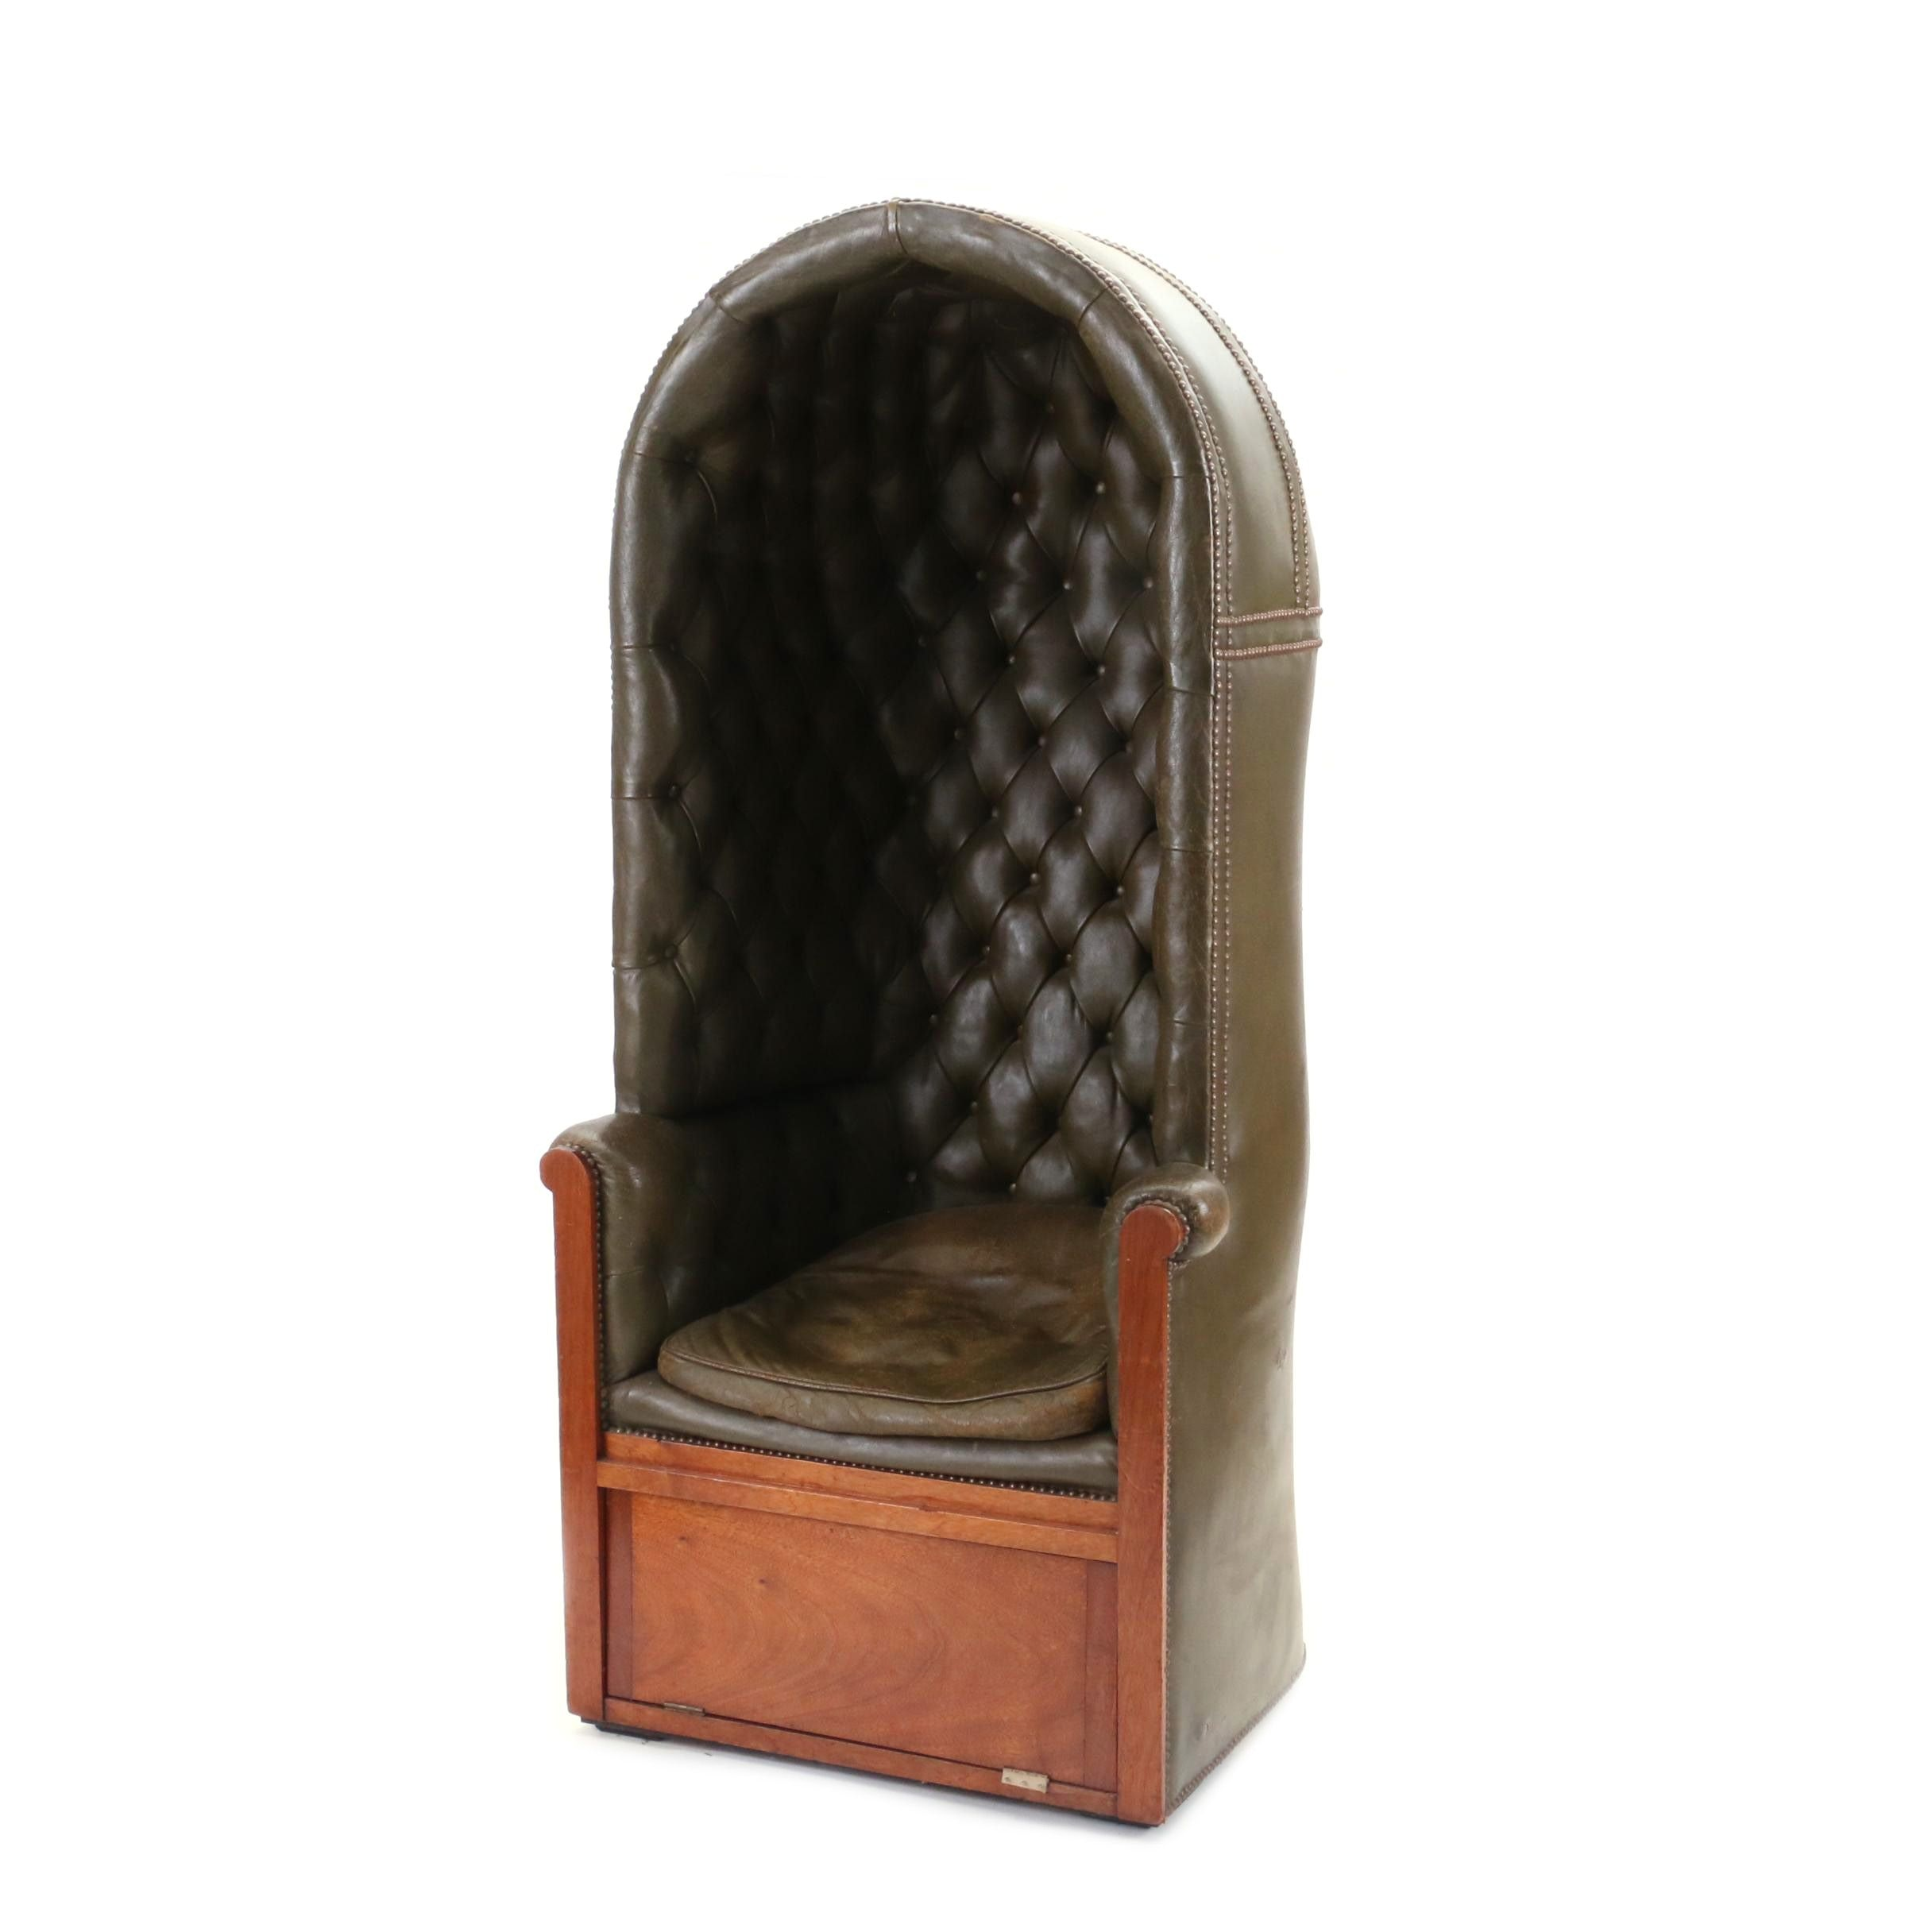 English Tufted Leather Porter's Chair, Early 20th Century